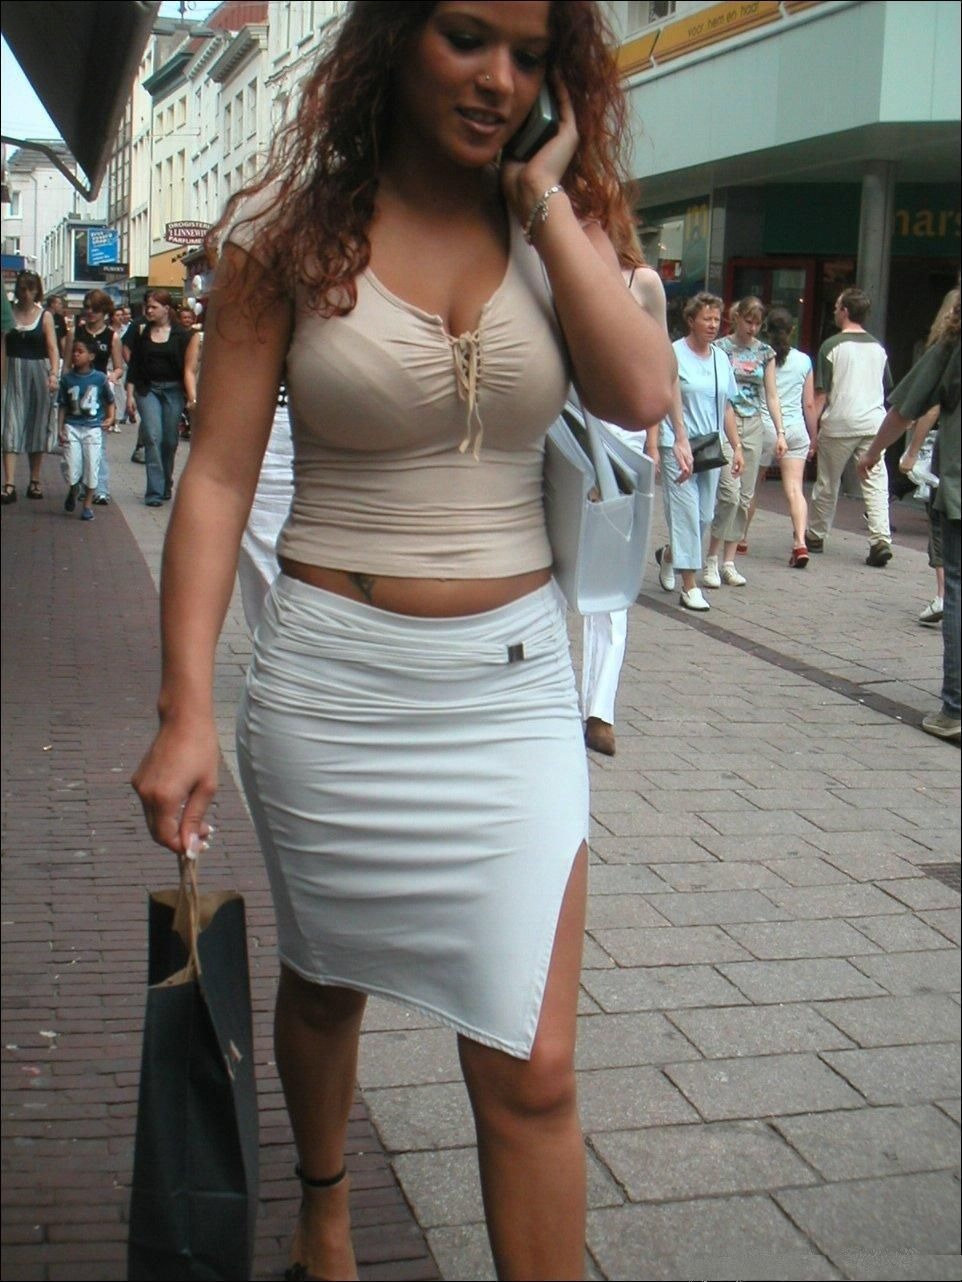 sexy woman in tight skirt with huge breasts